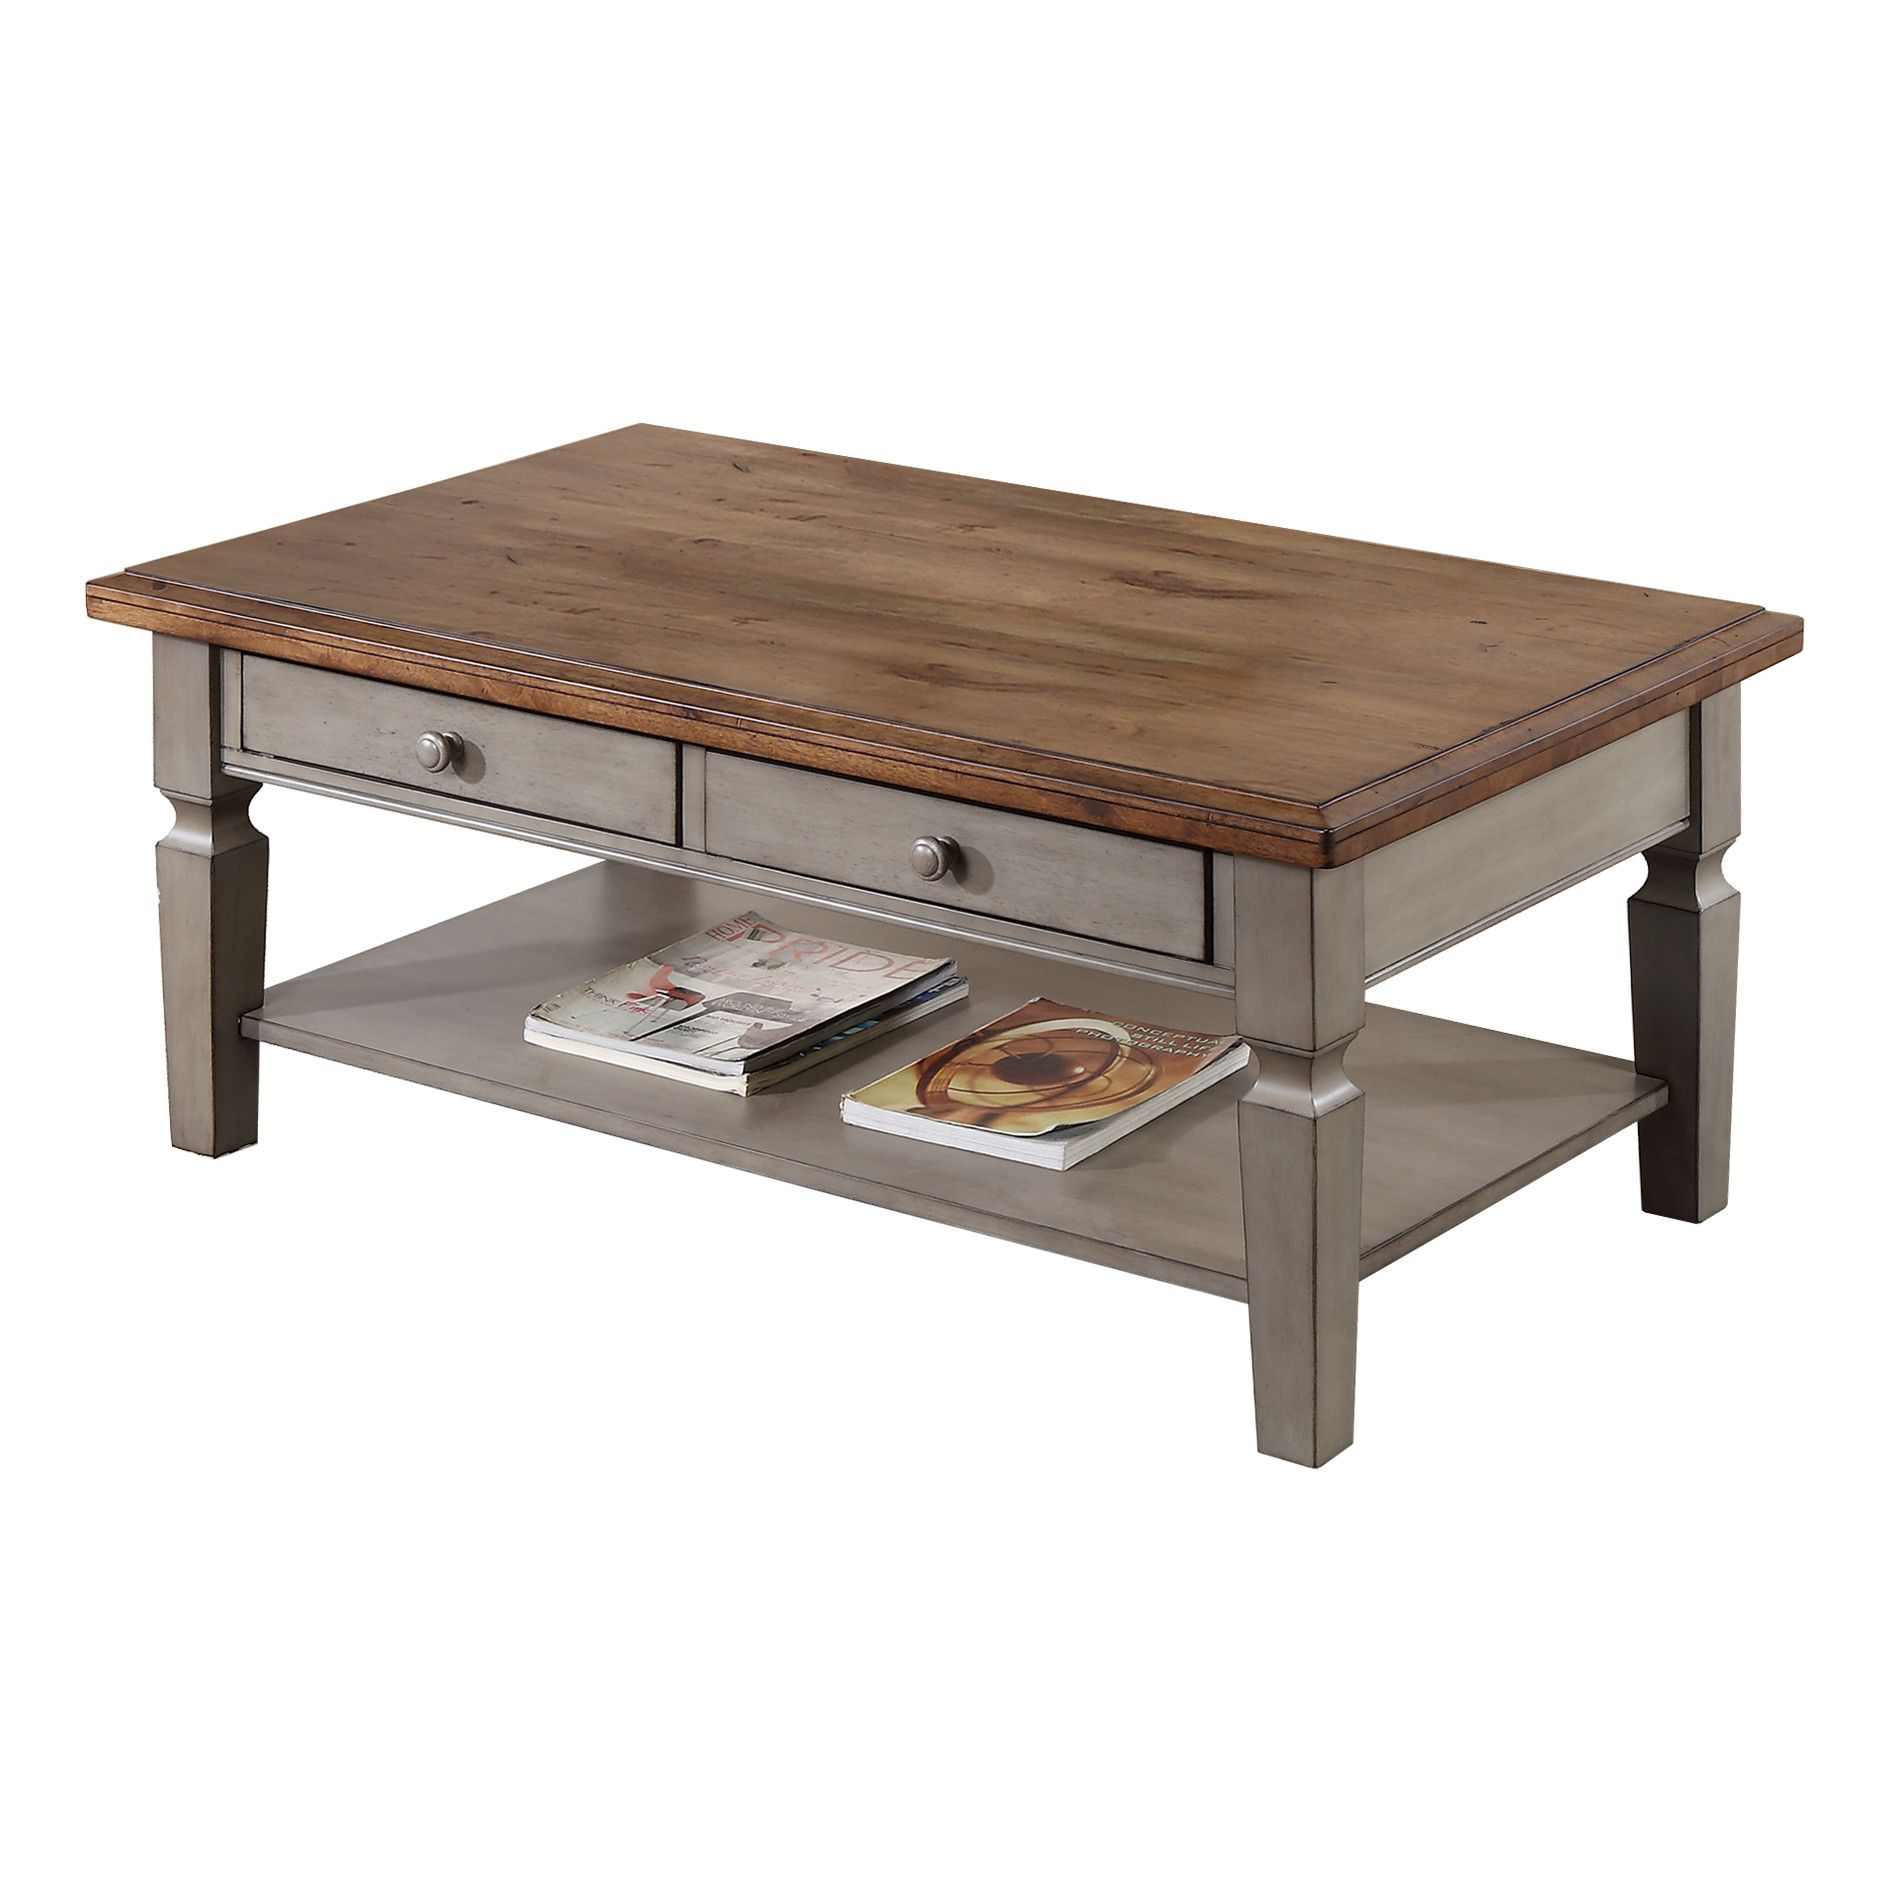 August Grove Reg Murtaugh Coffee Table Solid Wood Coffee Table Country Style Coffee Table Coffee Table With Shelf [ 1884 x 1884 Pixel ]